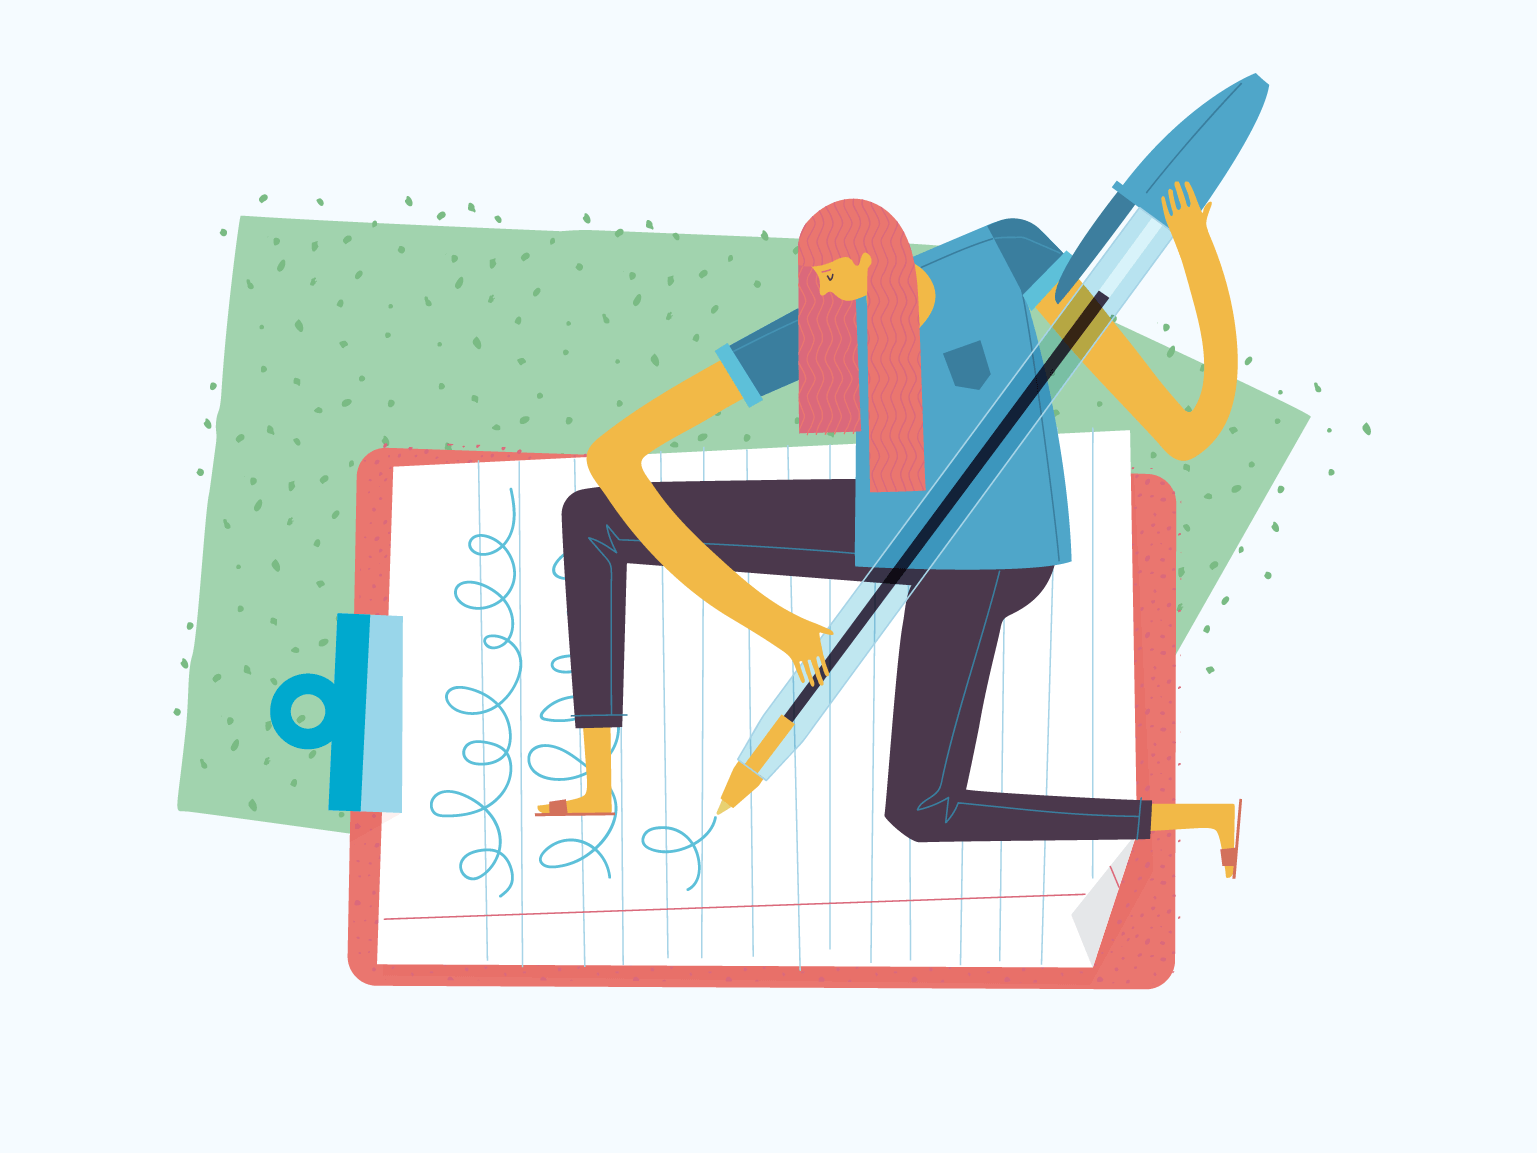 An illustration of a woman holding an oversized pen writing on a clipboard